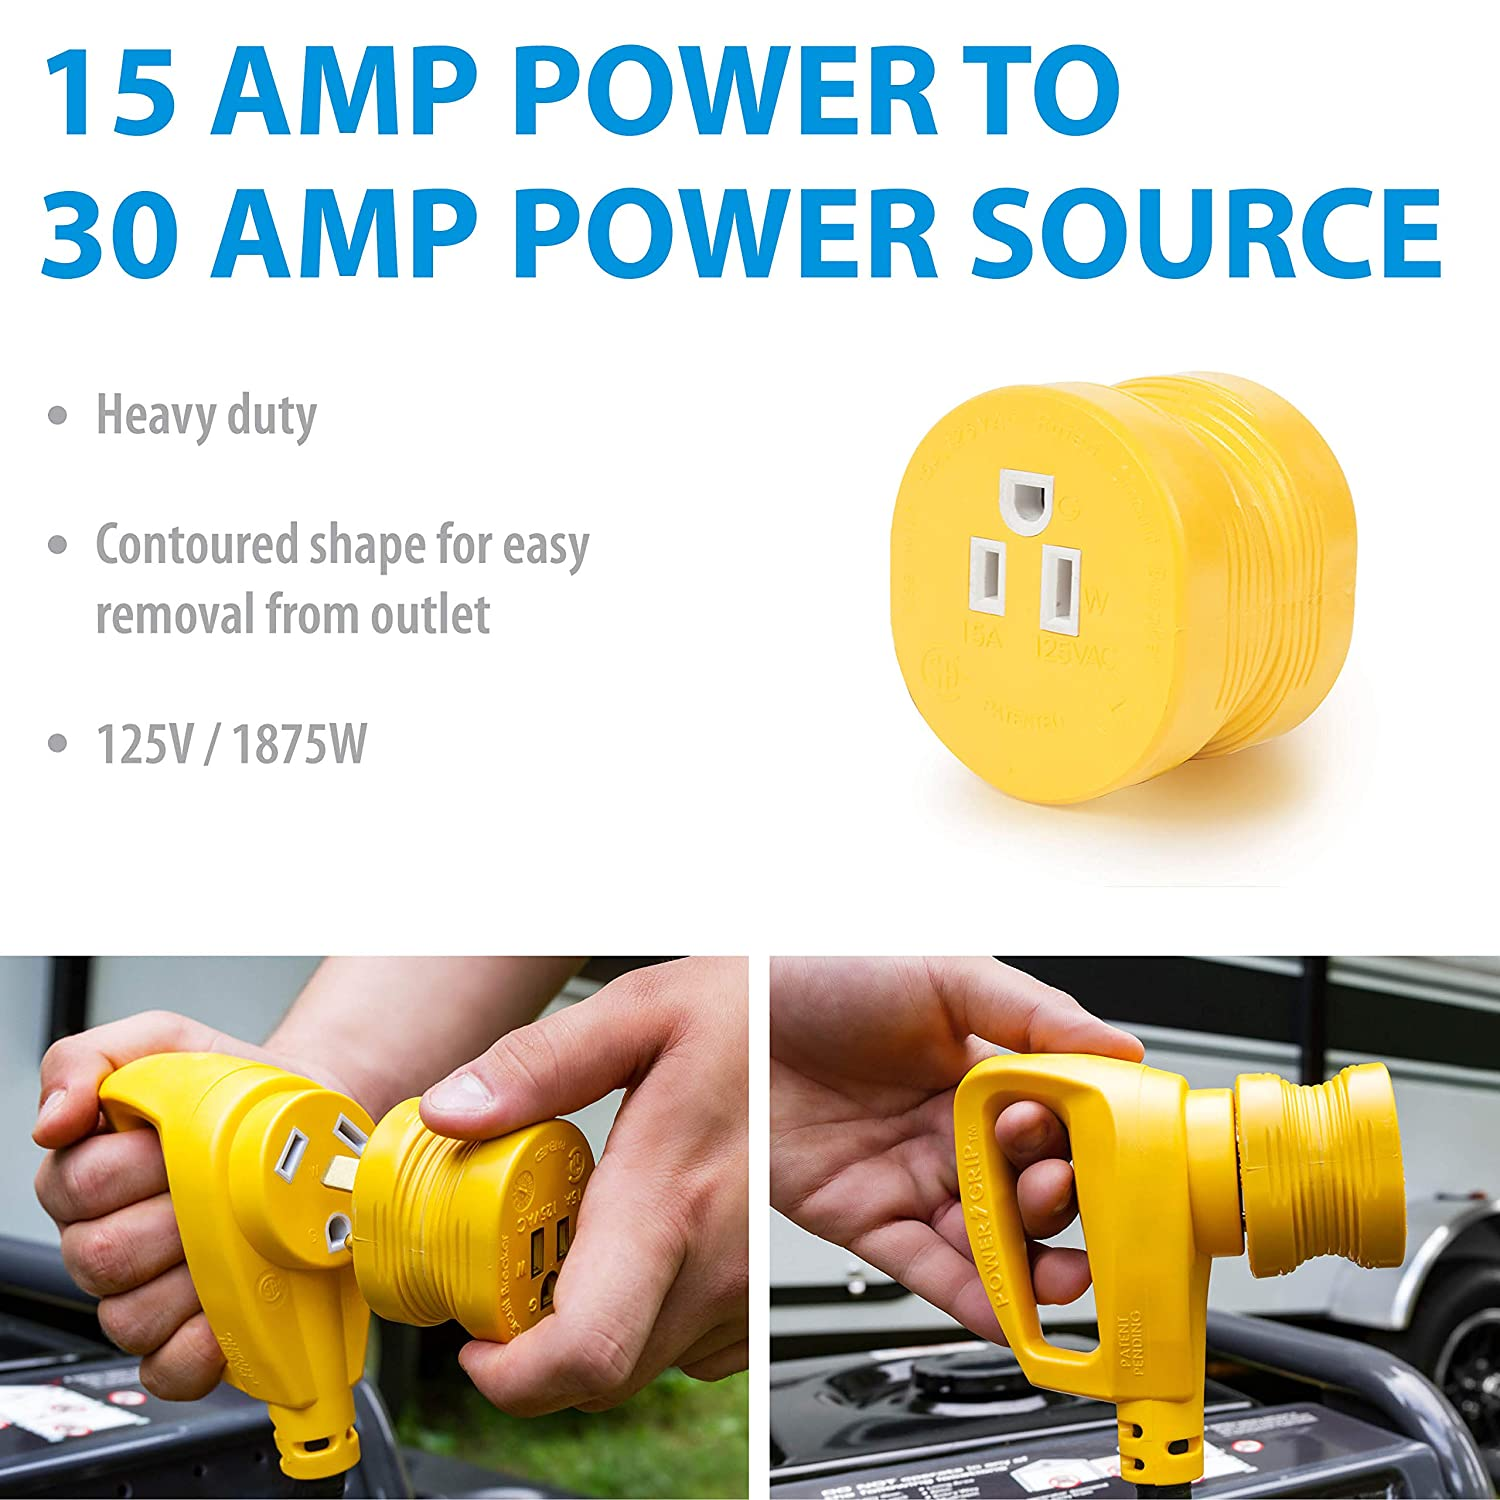 Camco Powergrip Durable Electrical Adapter Easy Grip 30 Rv Panel Wiring Diagram Further Extension Cord Plug For Simple And Safe Use Amp Male 15 Female 55233 Automotive